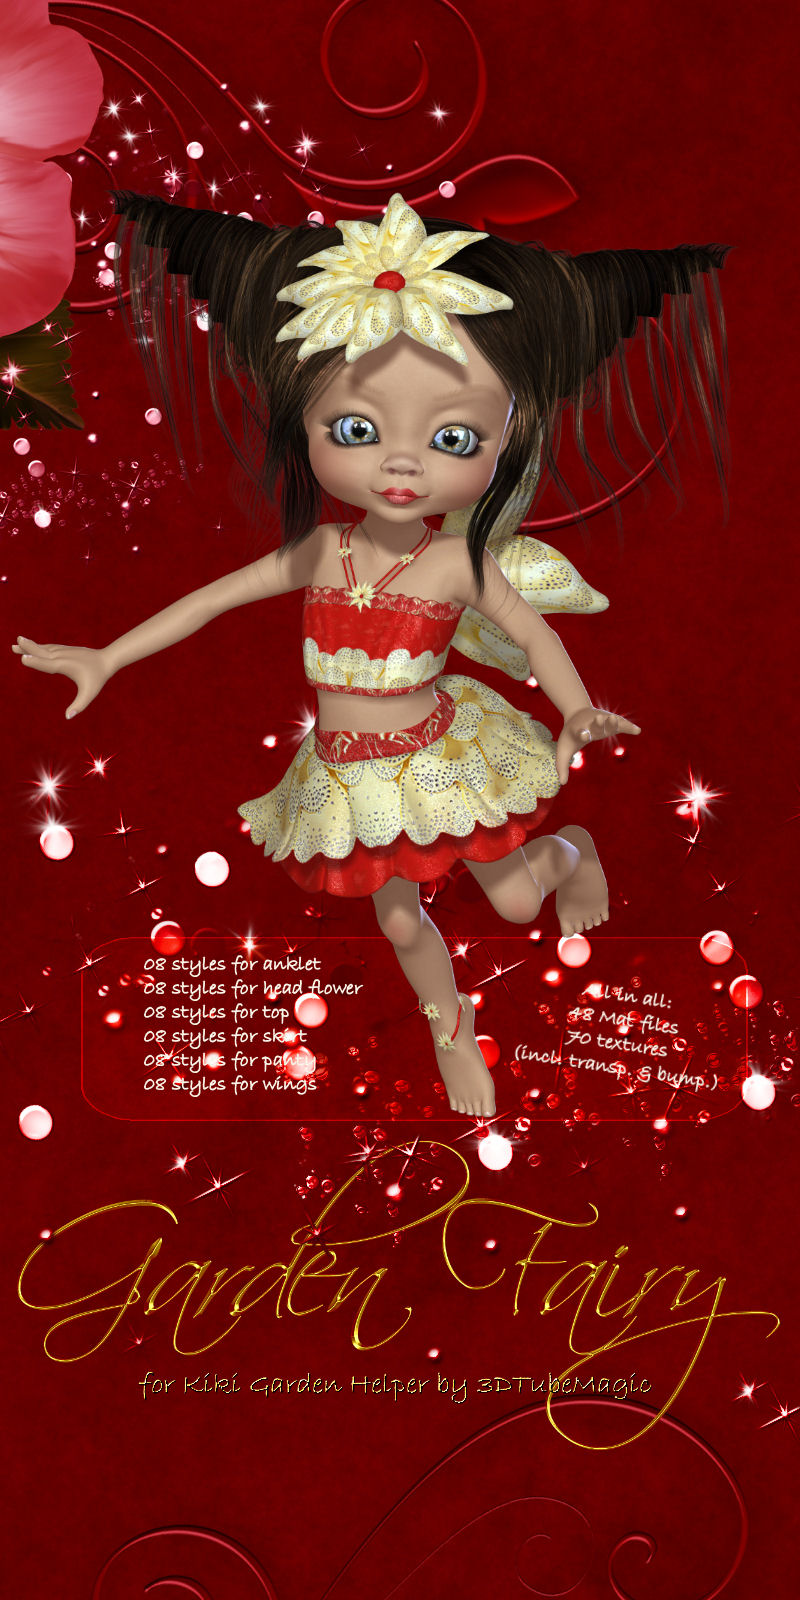 DA-Garden Fairy for Kiki Garden Helper 3D TubeMagic